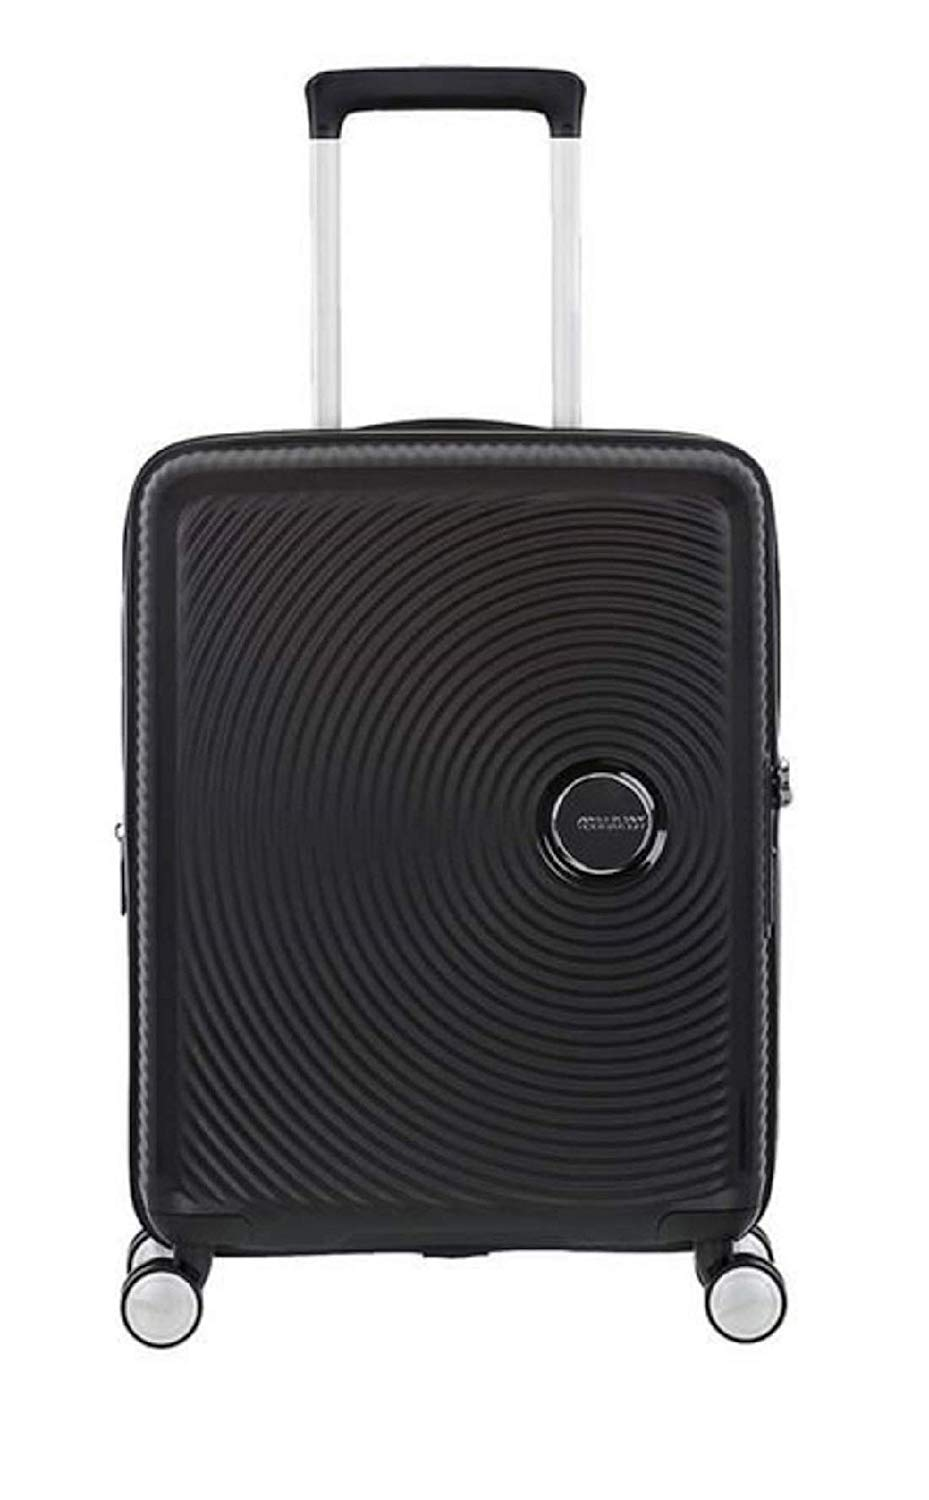 American Tourister - Soundbox Spinner Erweiterbar, 55cm, 35,5/41 L - 2,6 KG, Schwarz (Bass Black)